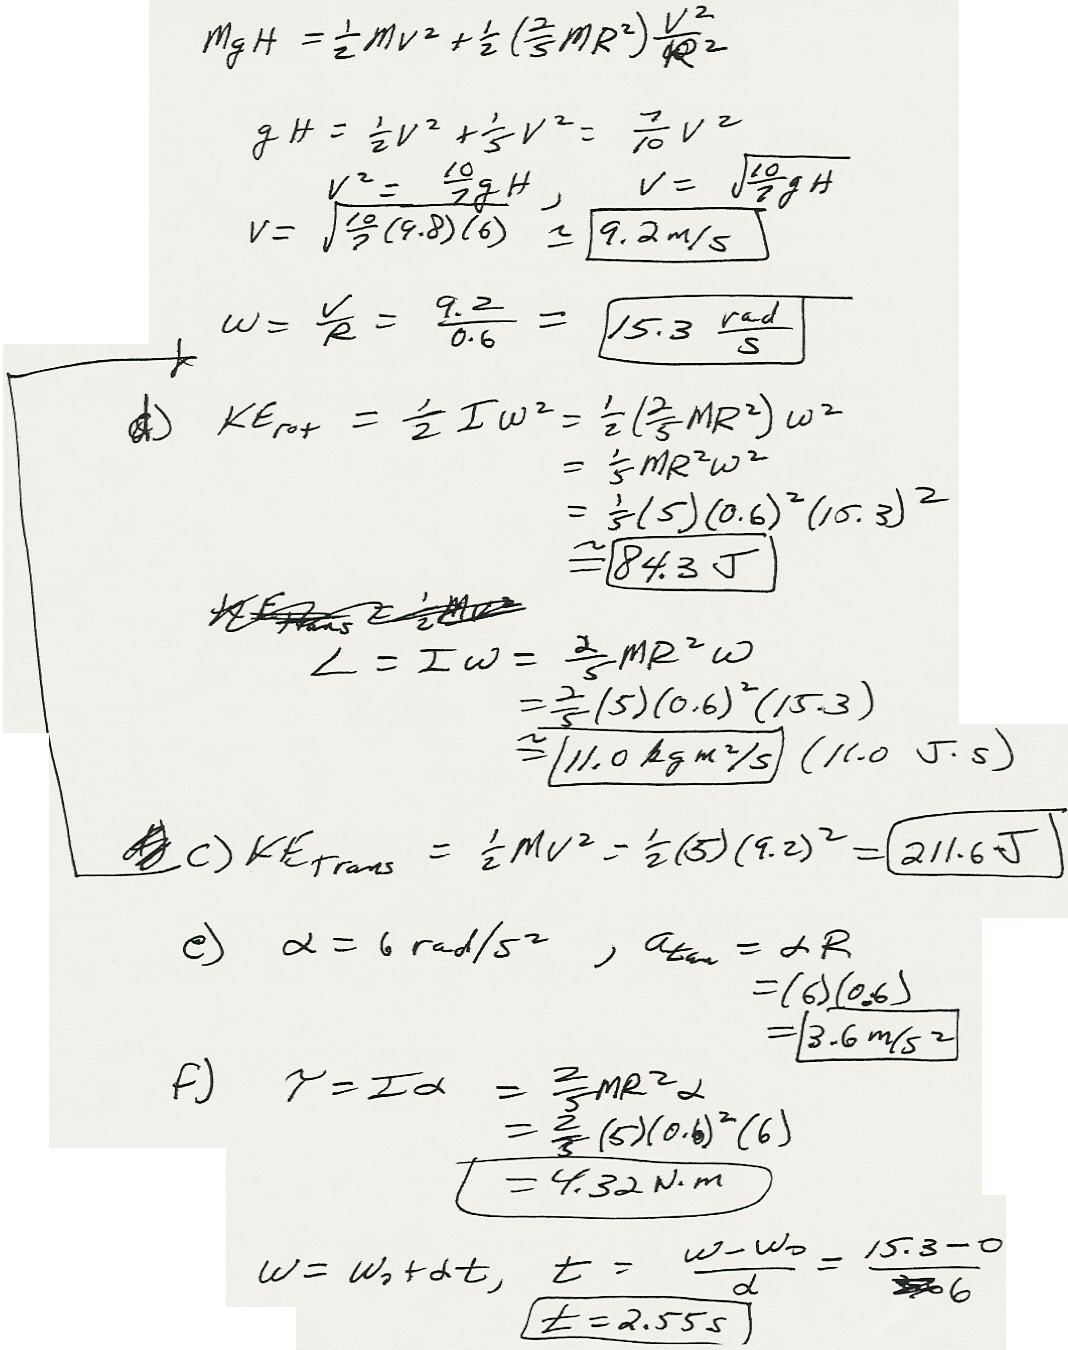 physics 4304 homework 1 3 of 12 Fraction solution pages 1 2 3 4 5 6 7 8 9 10 11 12 13 14 15 16 17